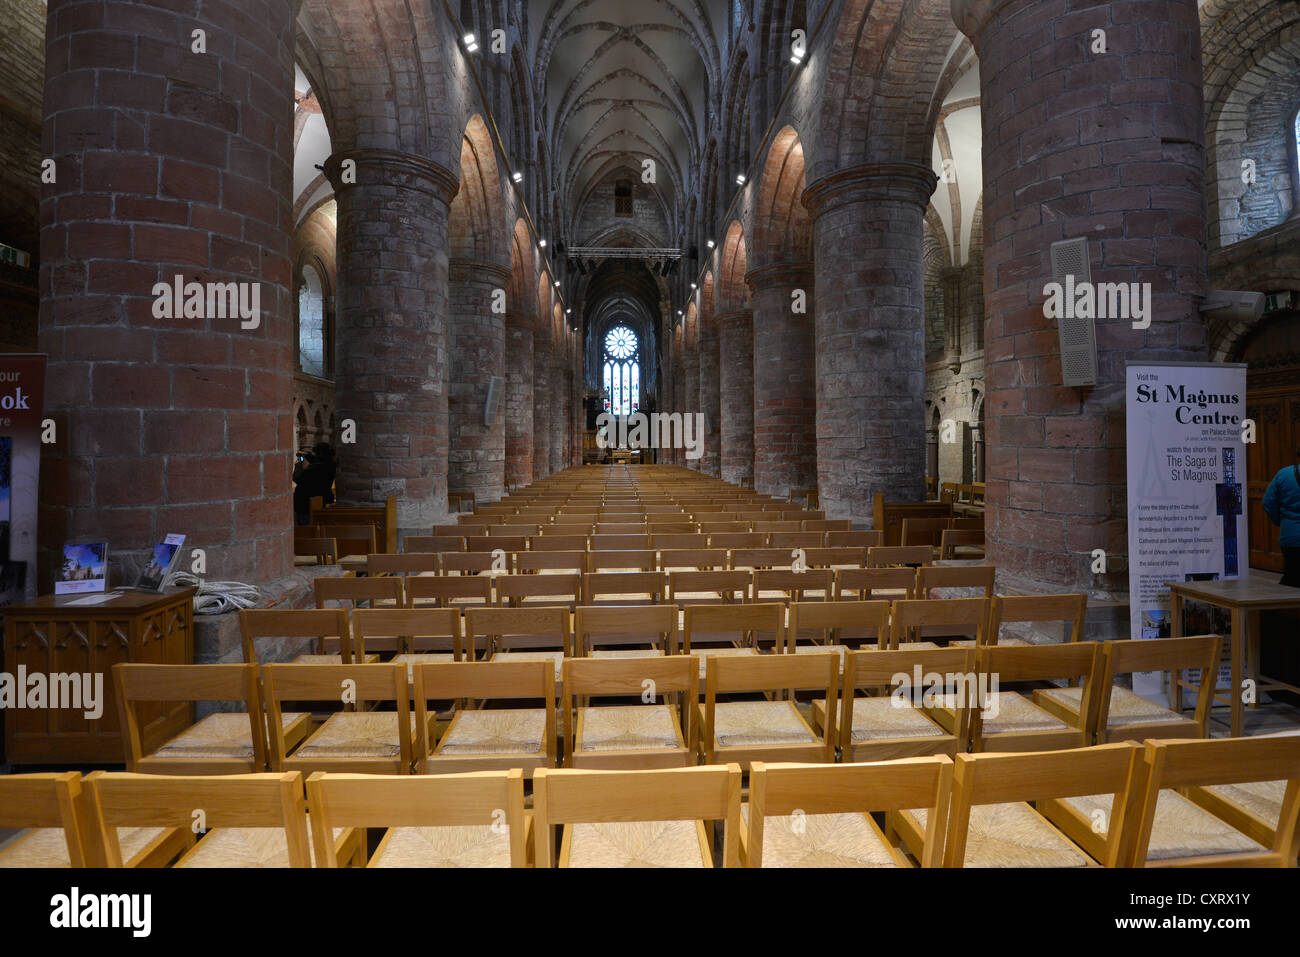 Interior view, St Magnus Cathedral, Orkney Islands, Kirkwall, Scotland, United Kingdom, Europe - Stock Image